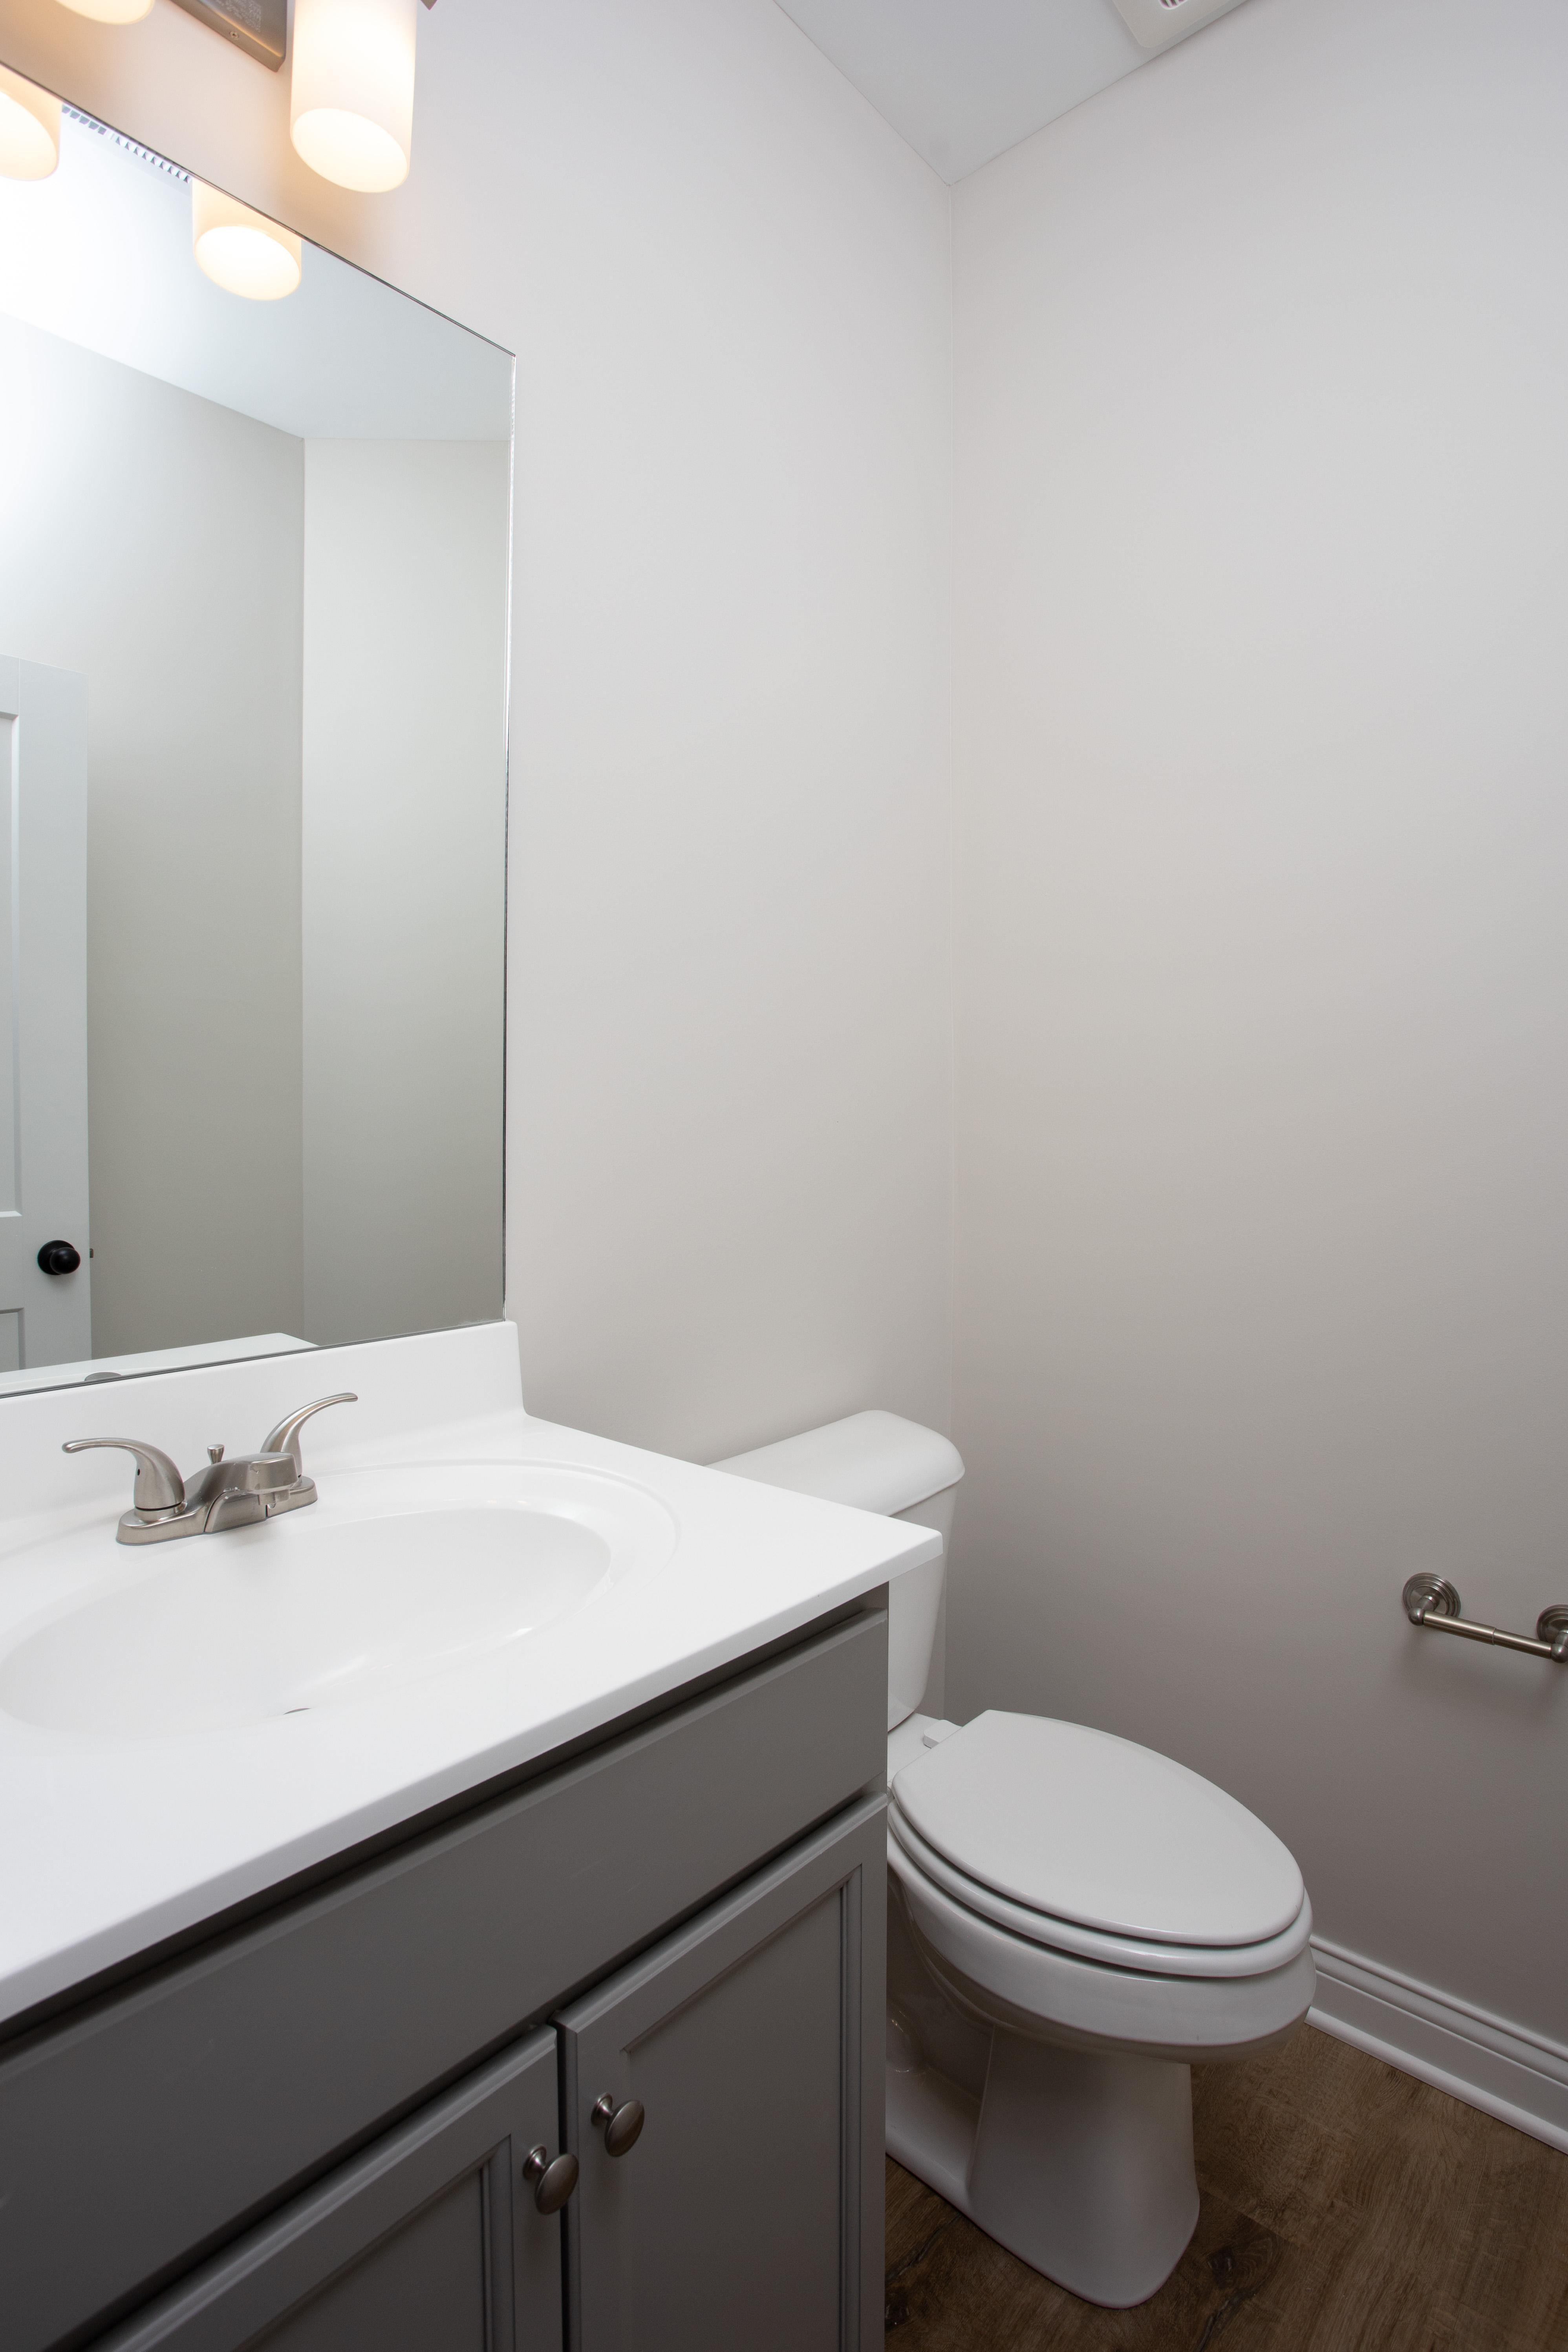 Bathroom featured in the XThe Nancy - 3rd Car By James Monroe Homes in Lexington, KY